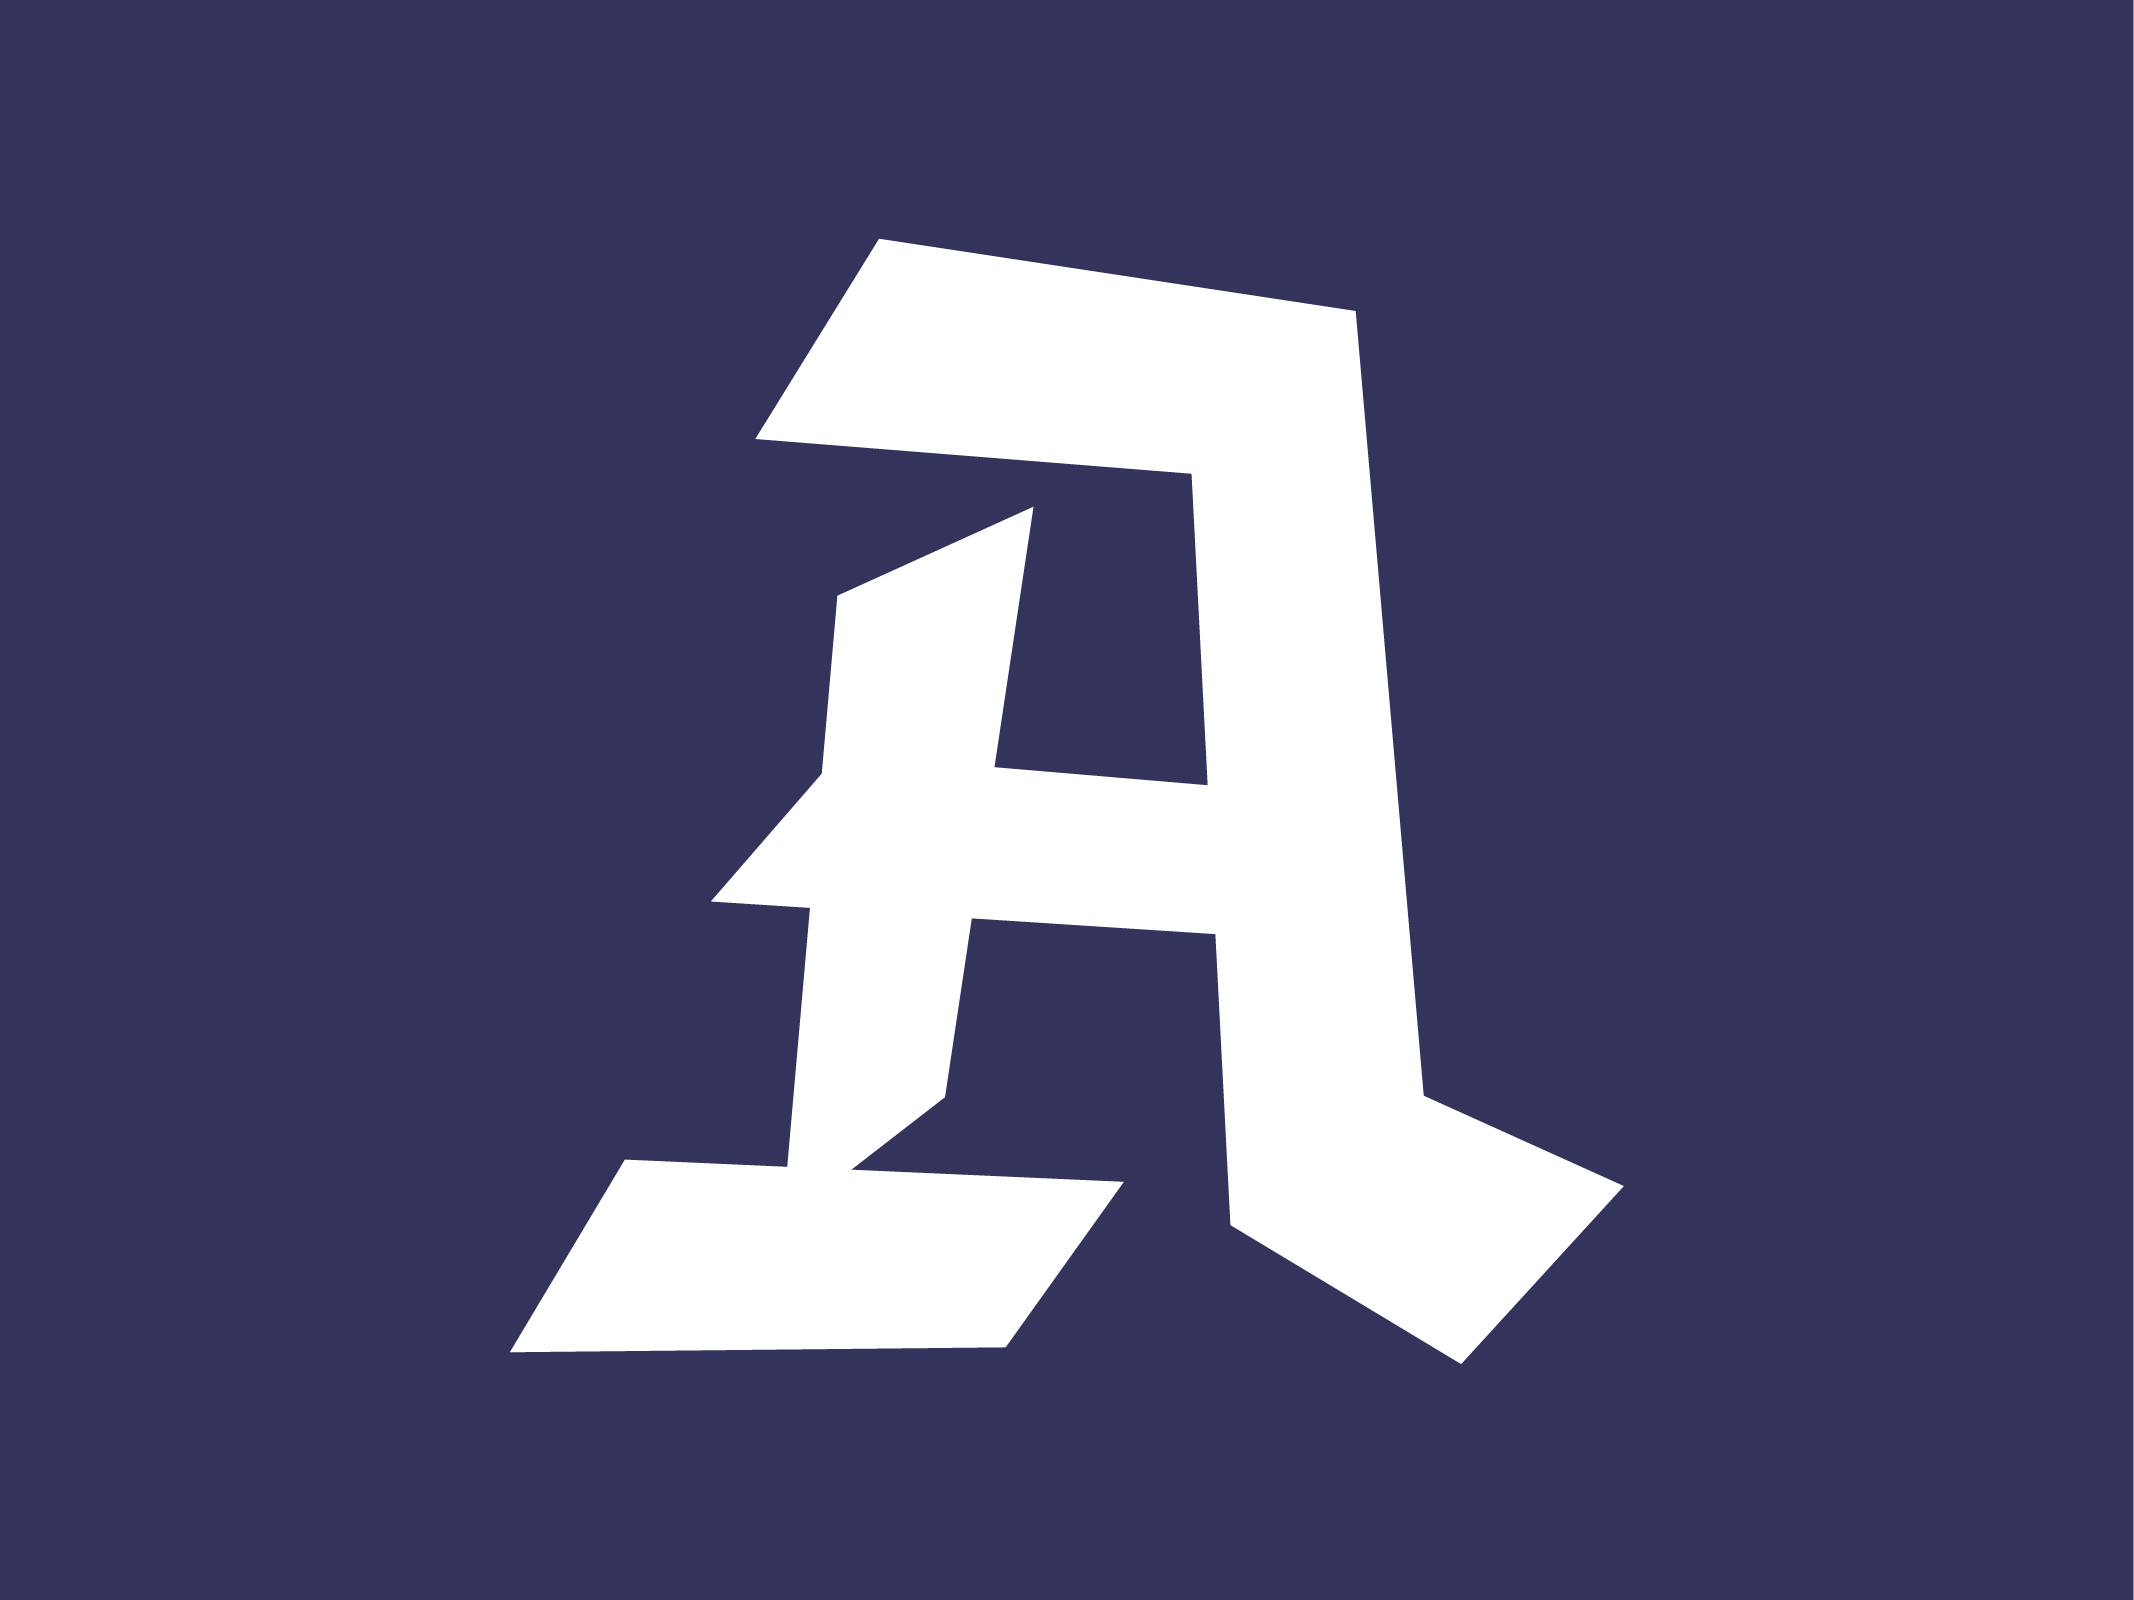 Blackletter inspired capital A // by www.chavelli.com